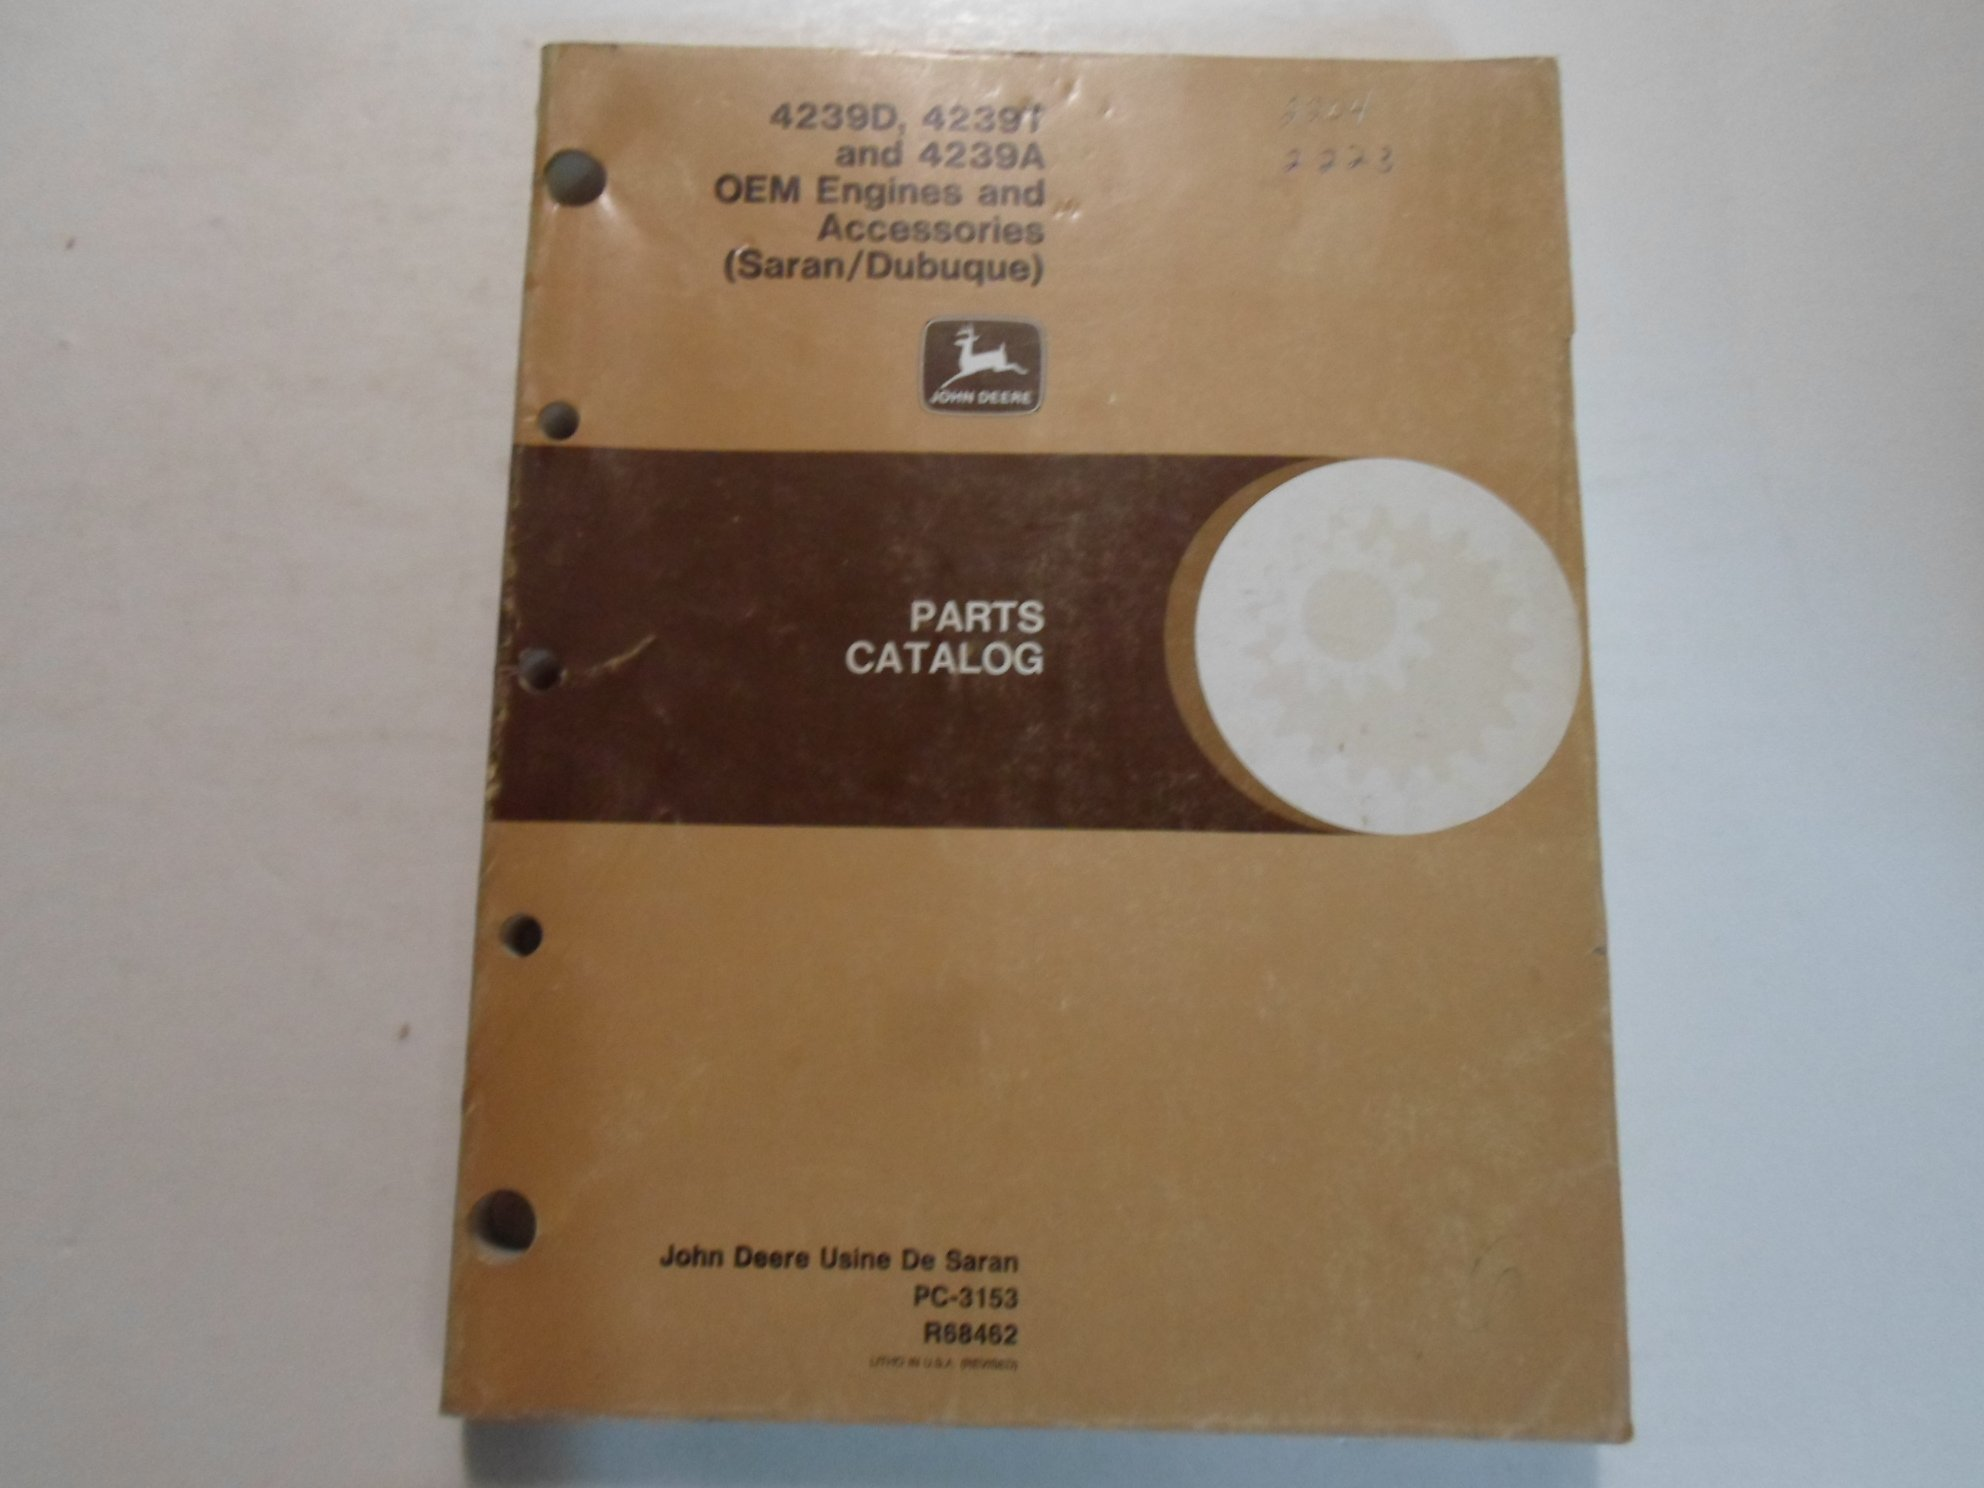 John Deere 4239D 4239T 4239A OEM Engines & Accessories Parts Catalog Manual  WORN: LITHO: Amazon.com: Books